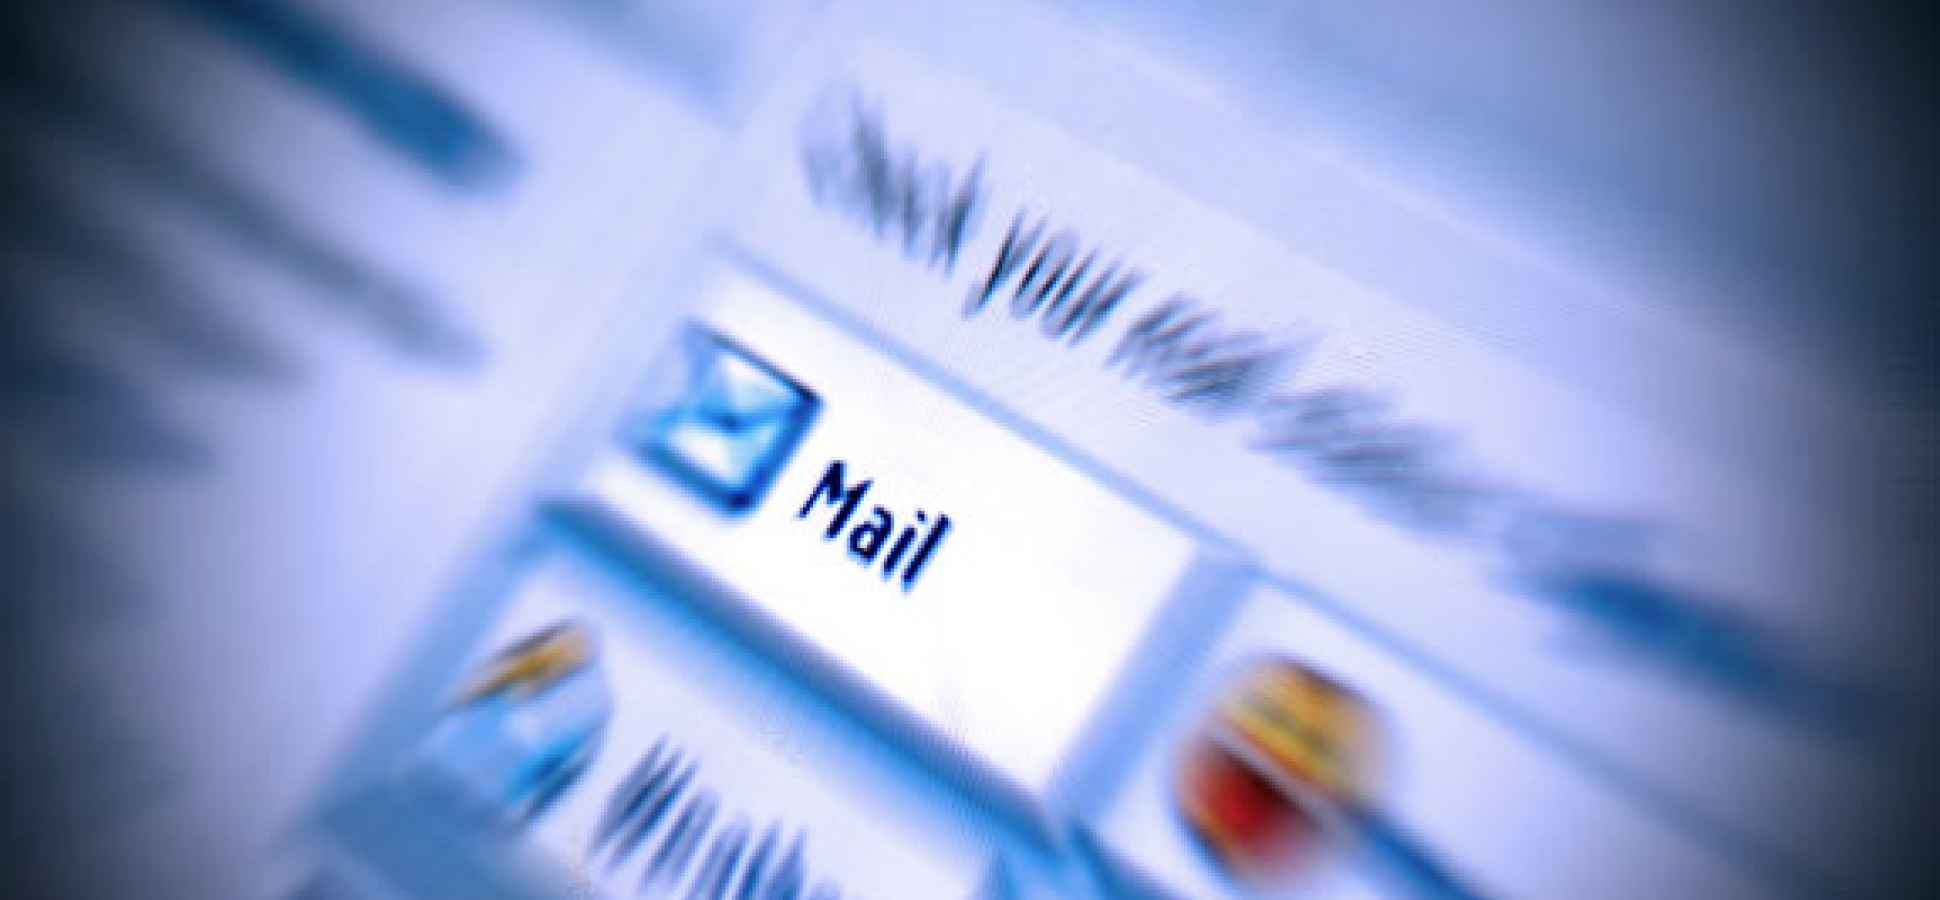 Too Many Emails? 3 Ways to Declutter Your Inbox